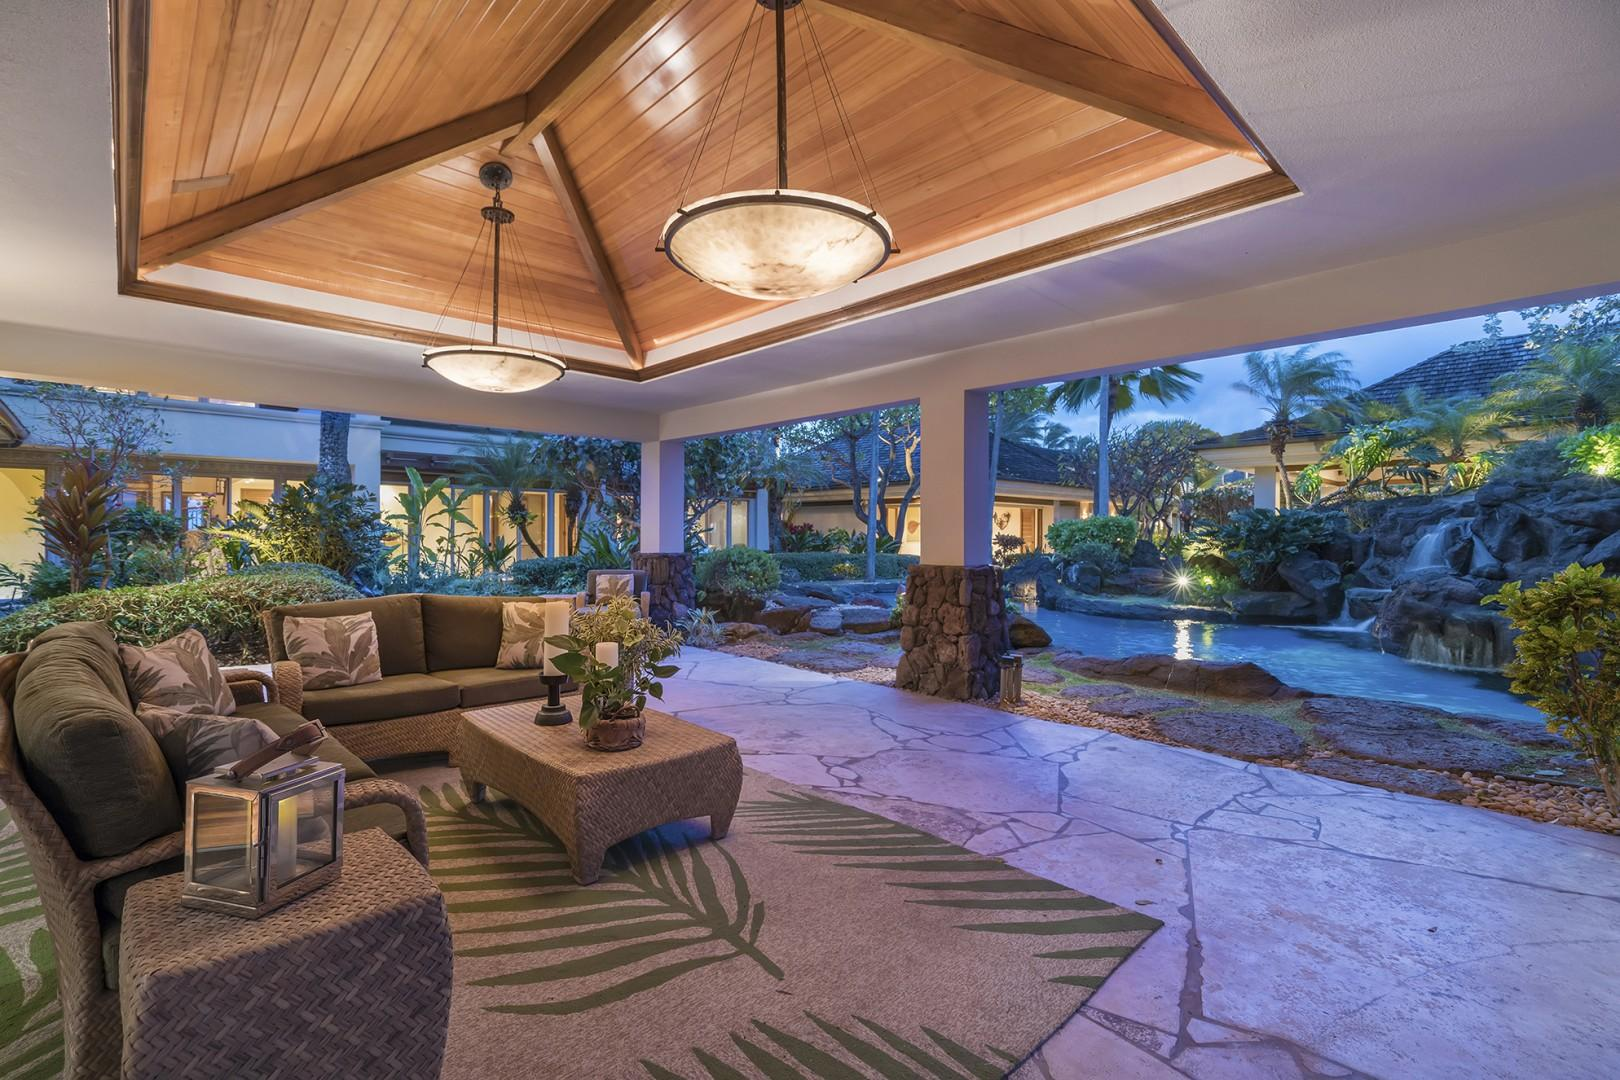 Outdoor Poolside Lanai with Sonos speakers